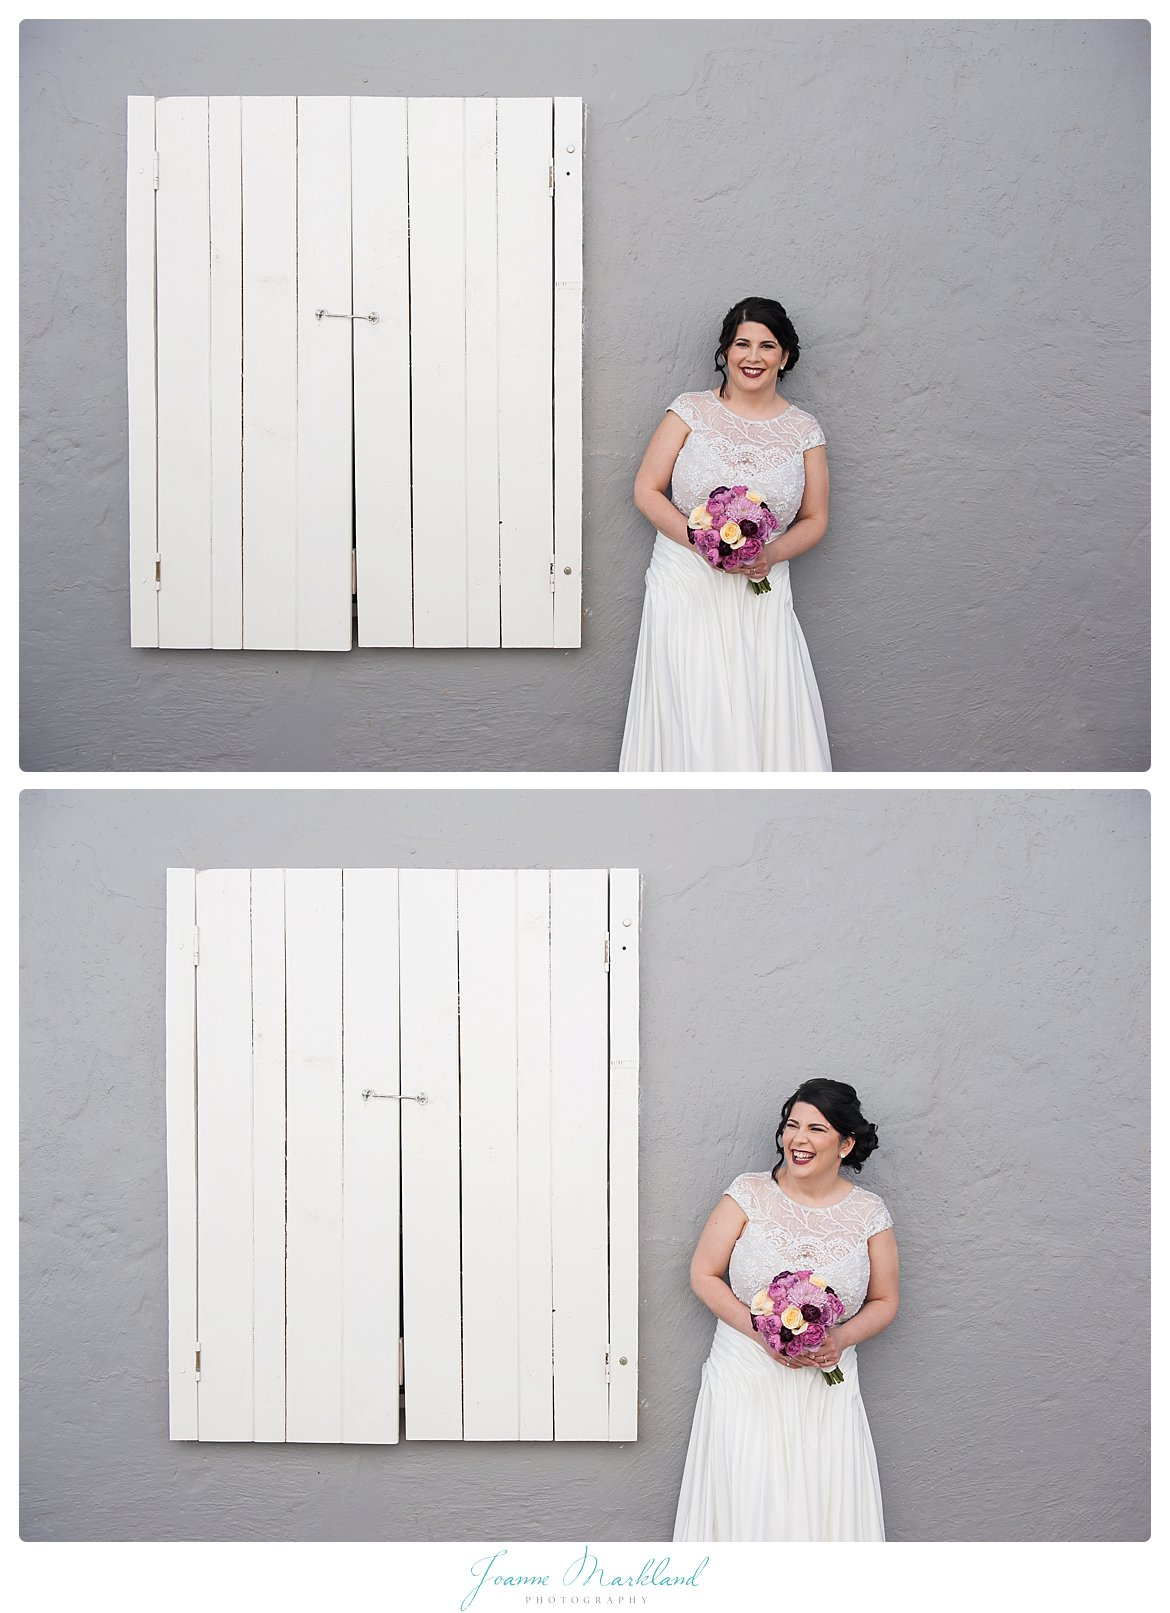 boorwater-wedding-hopefield-west-coast-cape-town-joanne-markland-photography-017